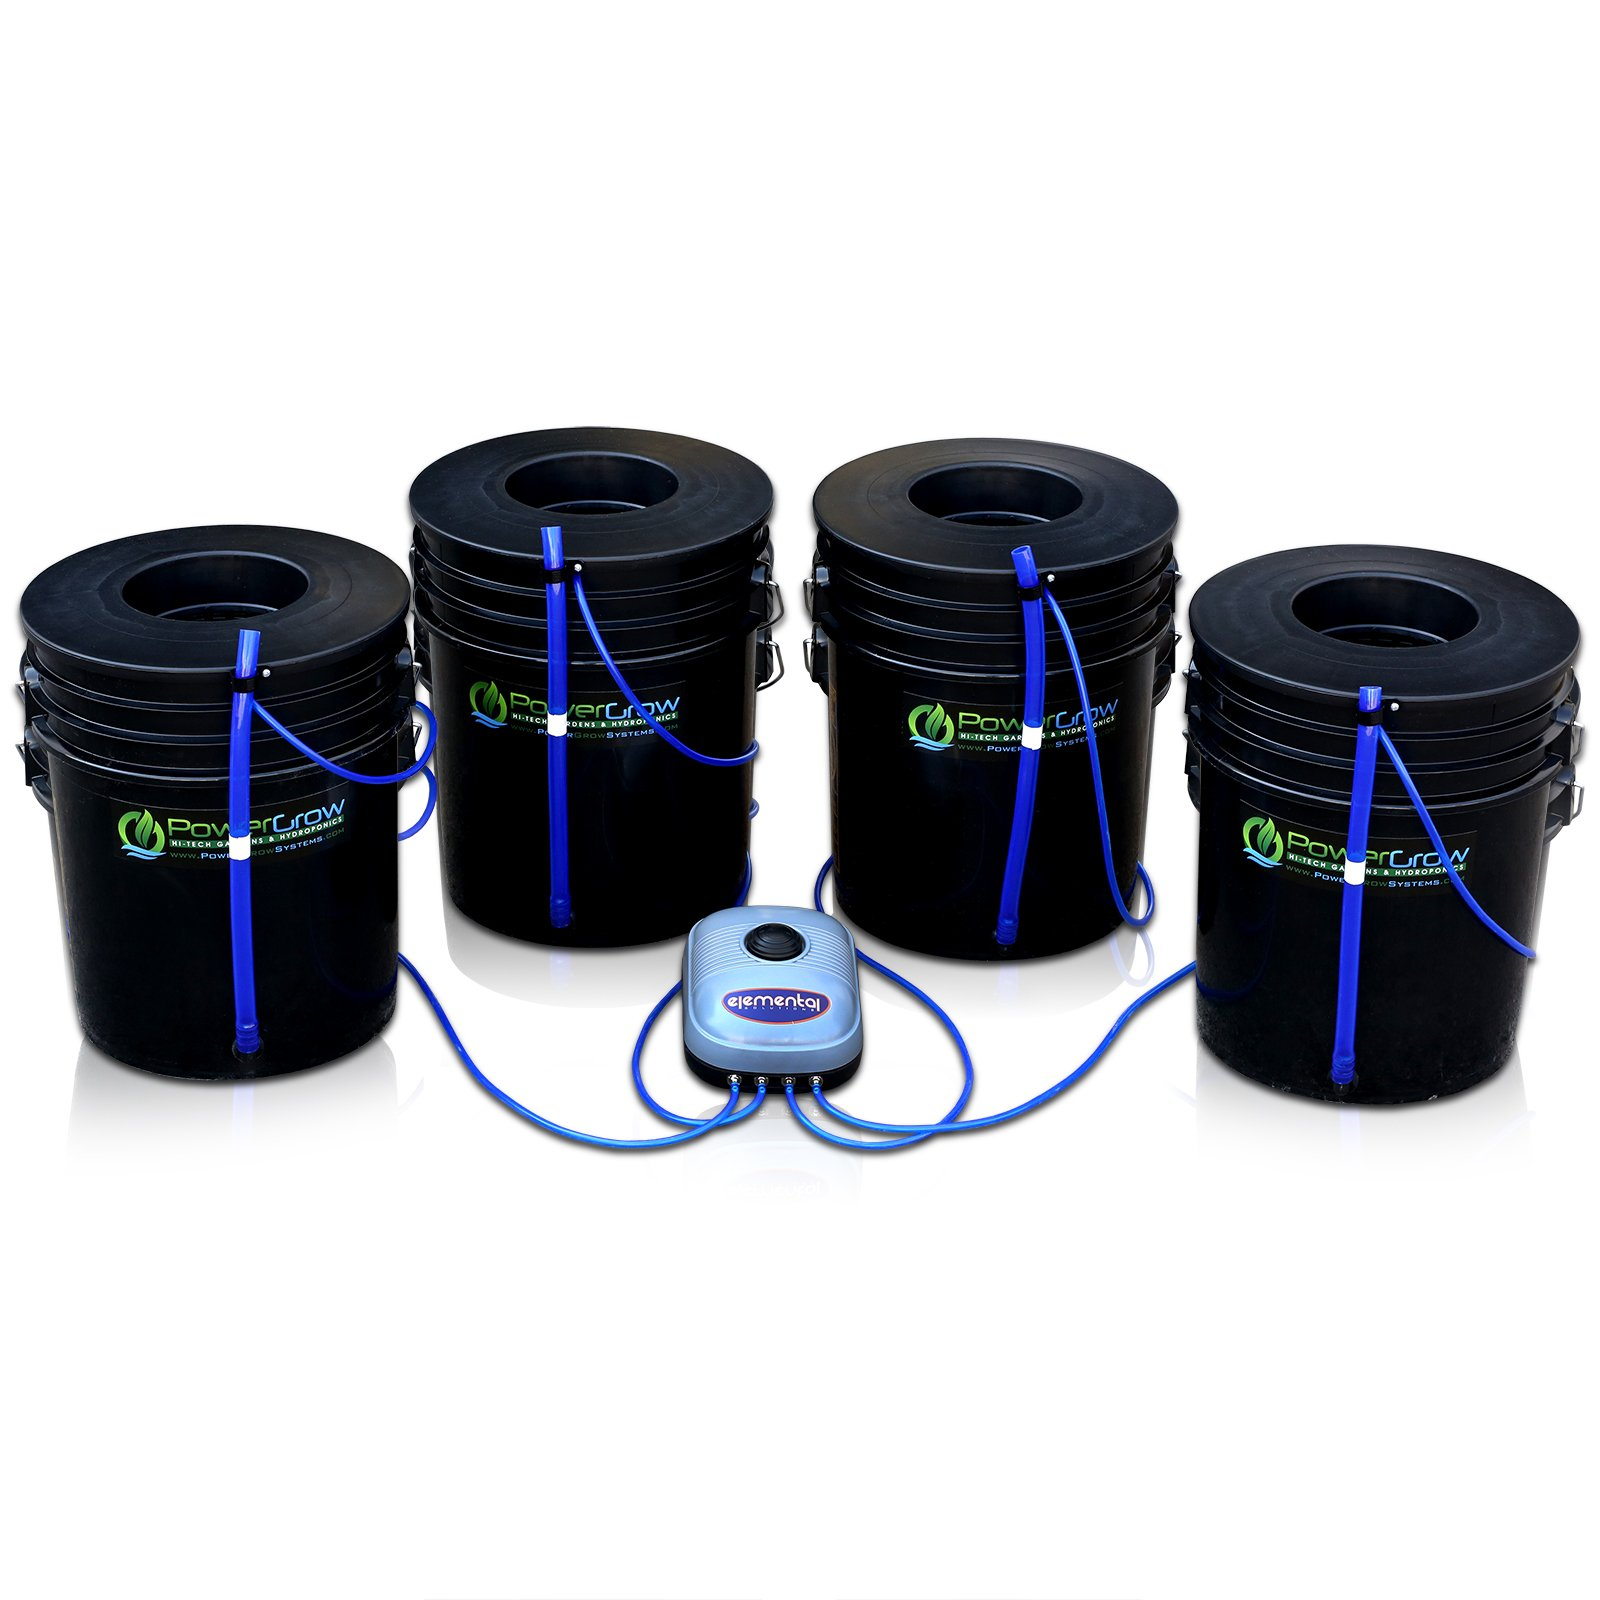 Deep Water Culture (DWC) Hydroponic Bubbler Bucket Kit by PowerGrow Systems (4) 5 Gallon - 6'' Buckets by PowerGrow Hydroponic Systems